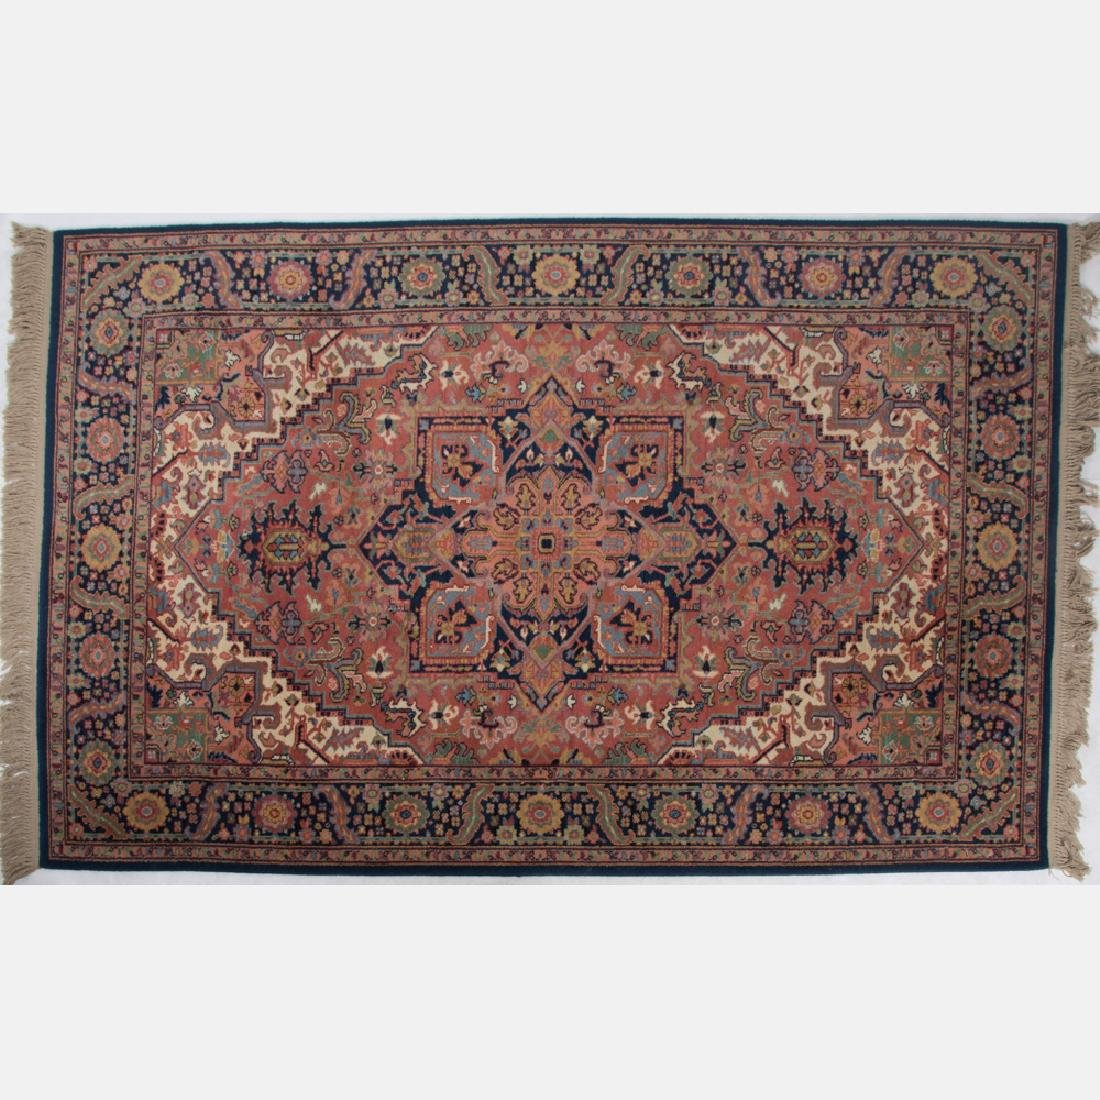 A Persian Machine Made Wool Rug, 20th Century.